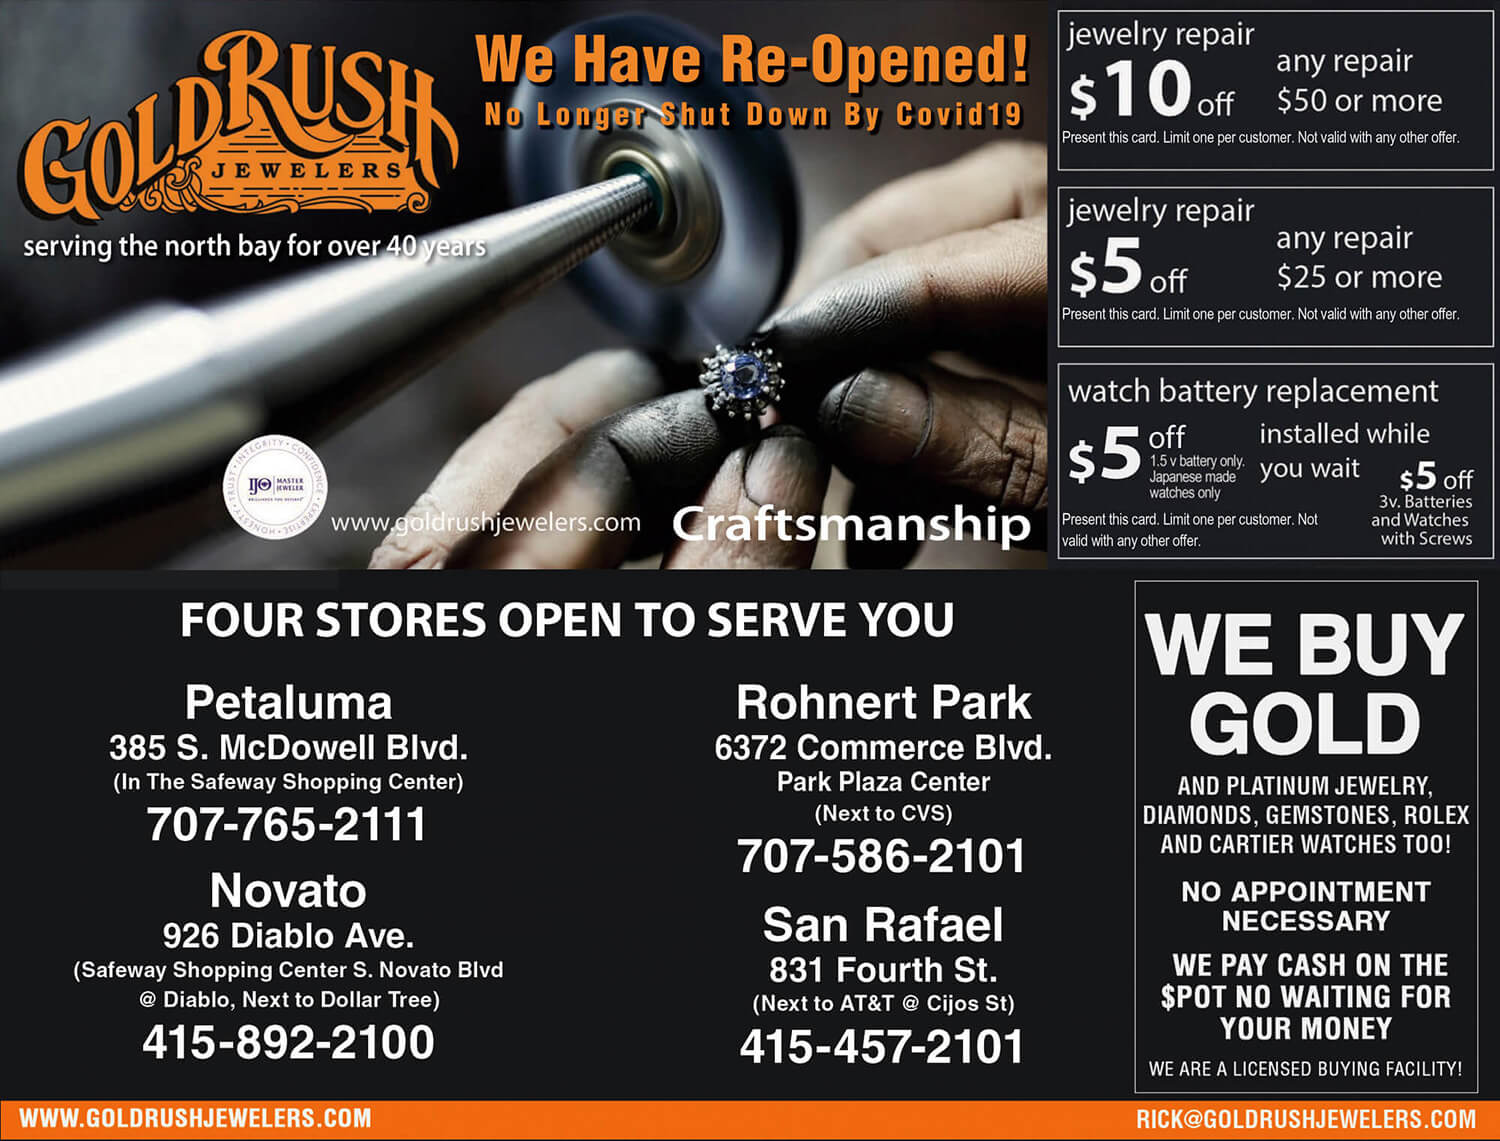 Gold Rush Jewelers Coupon July 2020